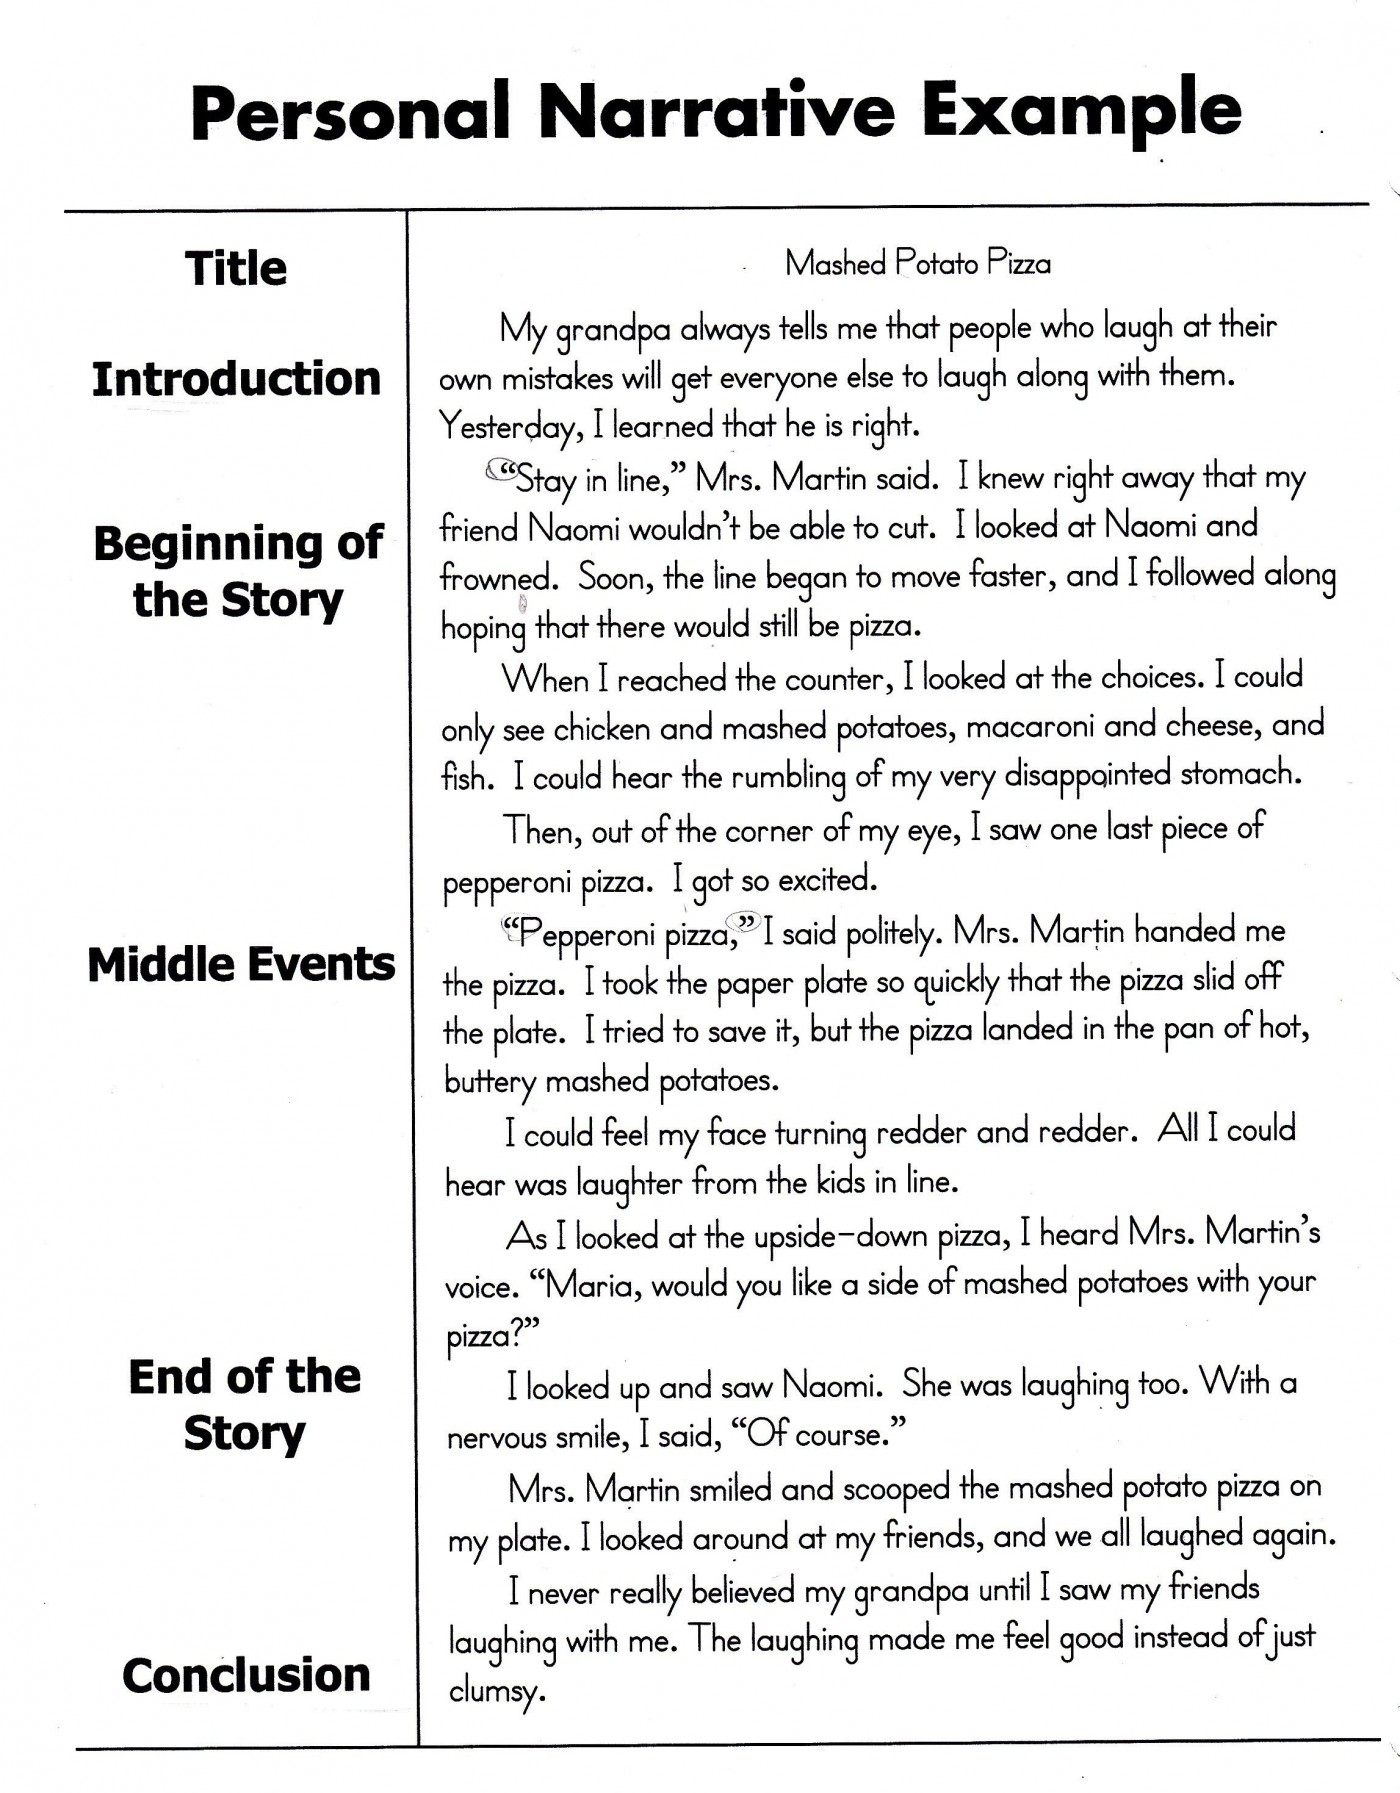 009 Essay Example Personal Narrative Writings And Essays How To Start Examples Write For 4th 5th Grade Oc Argumentative Middle School Conclusion Process Introduction Impressive Expository With Thesis Statement Mla Format College 1400